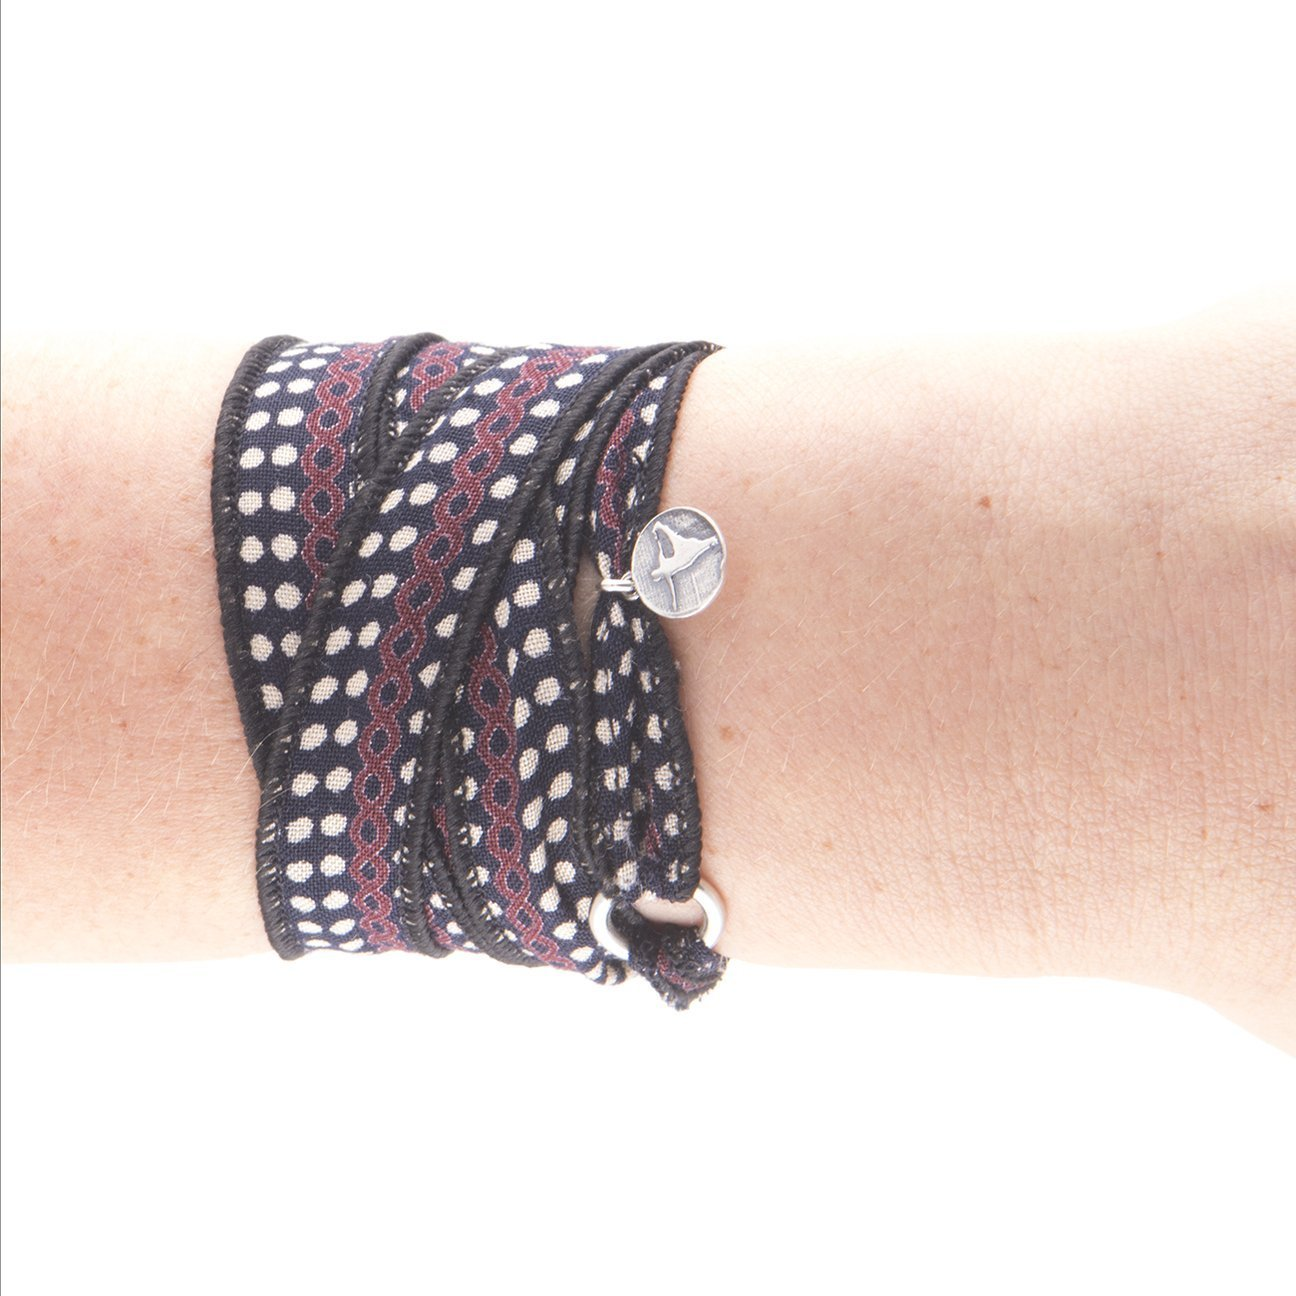 Variety Wrap Bracelets (3 PACK) by Buddha Pants® - Buddha Pants®